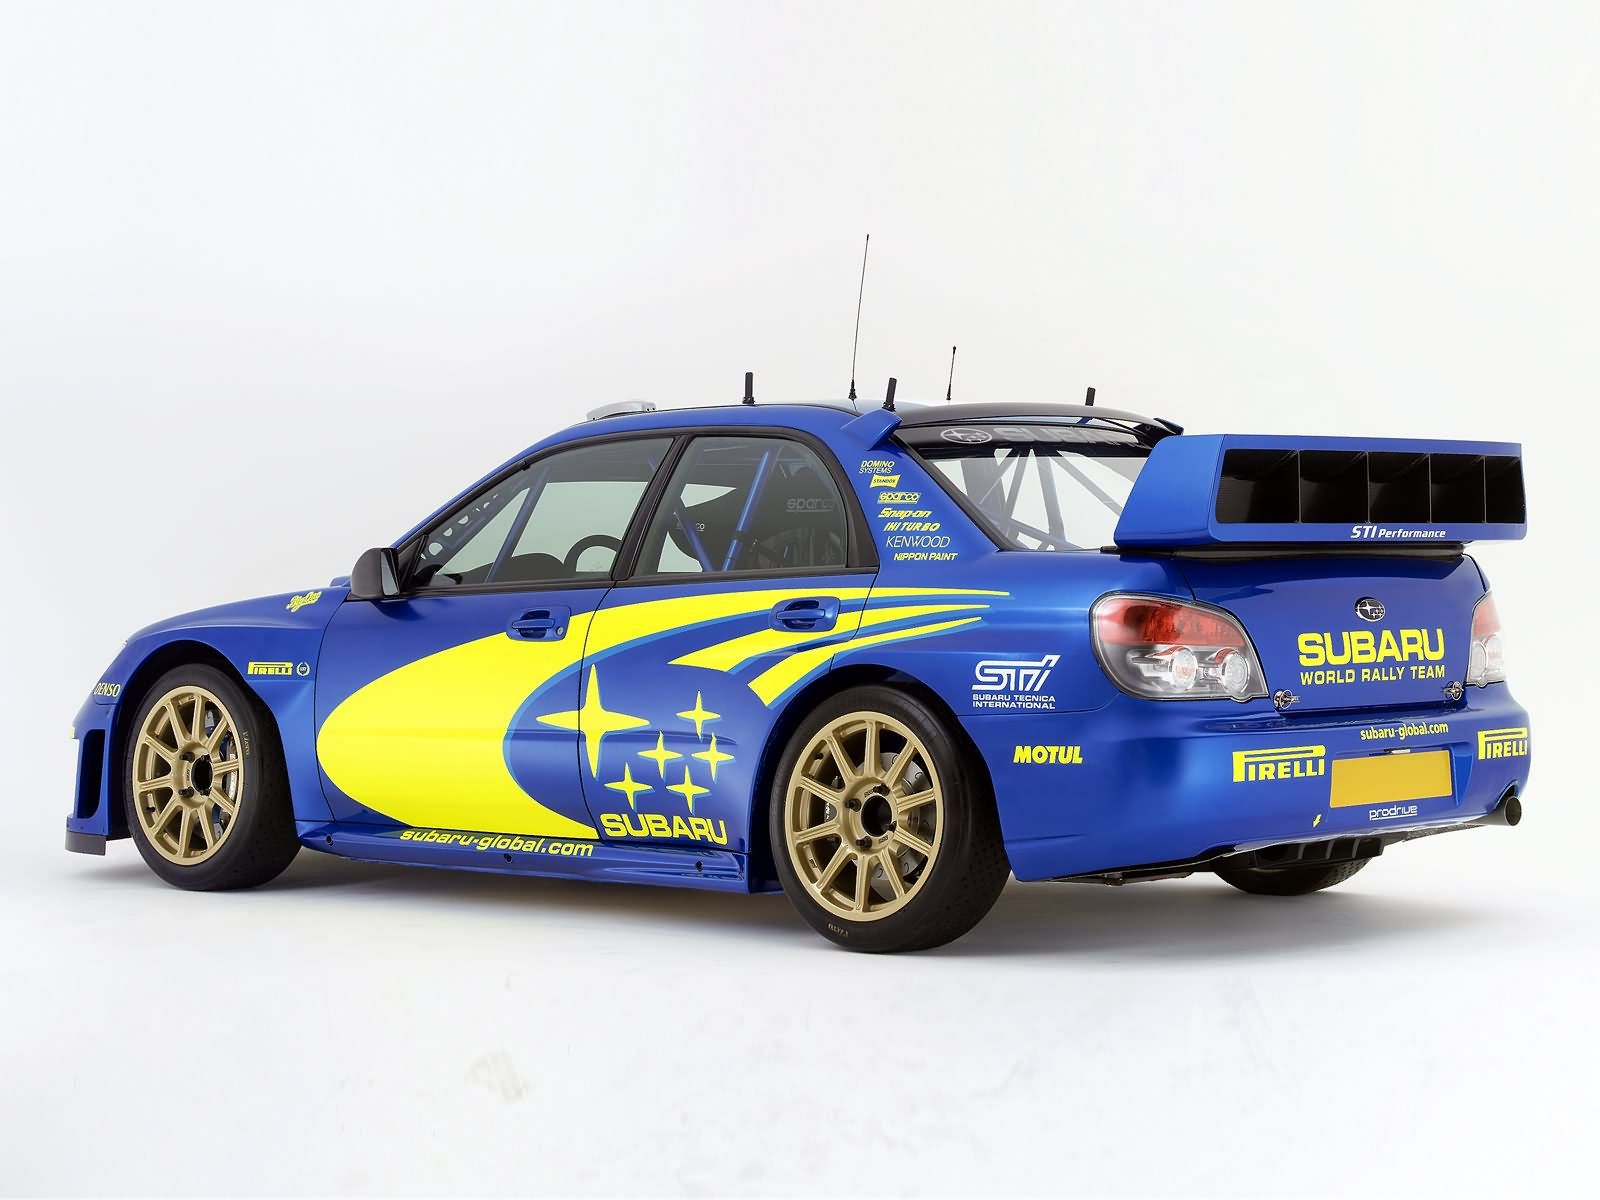 2019 Subaru Impreza WRC Prototype photo - 2